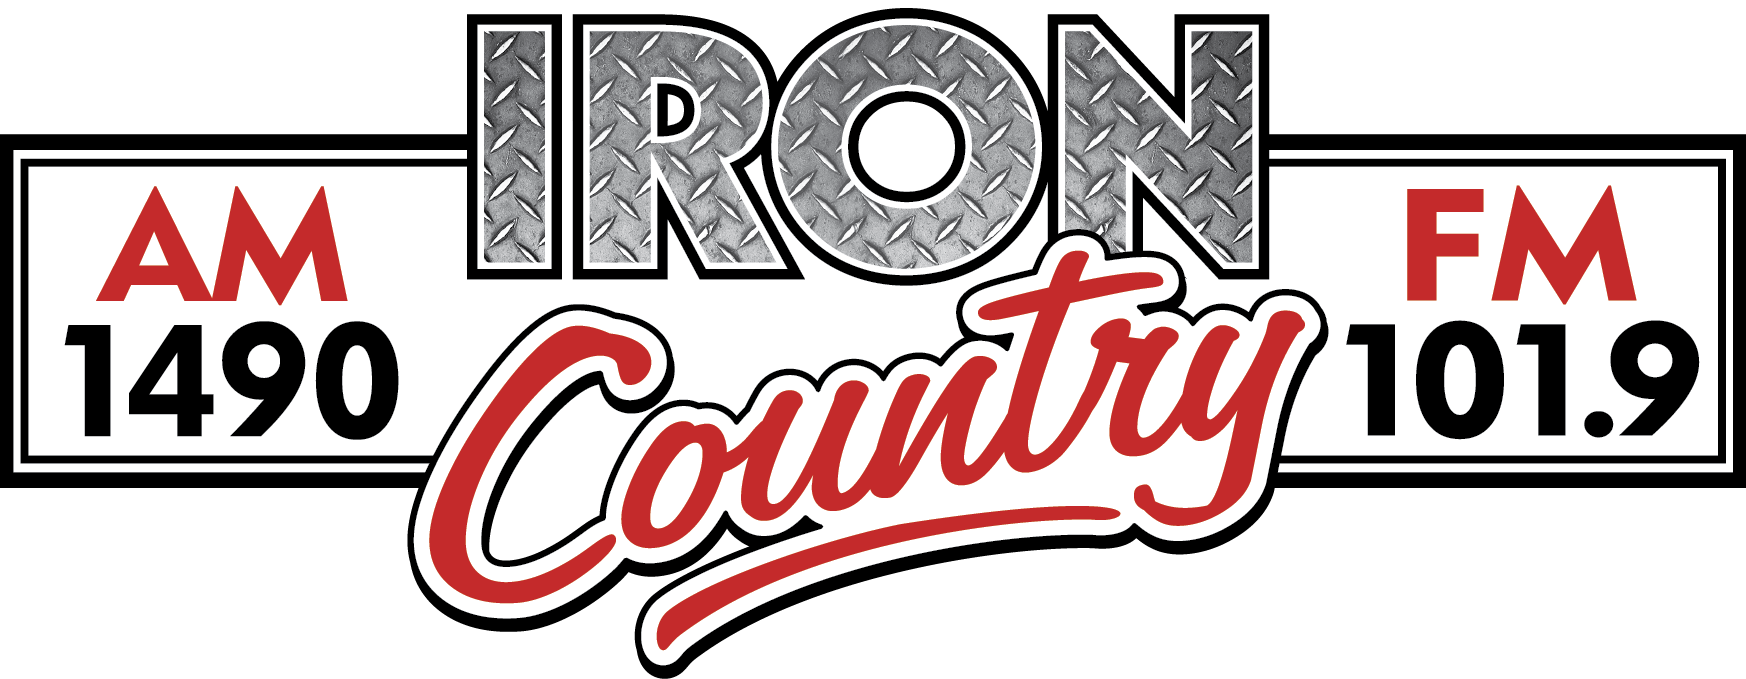 Iron Country 101.9FM / 1490AM